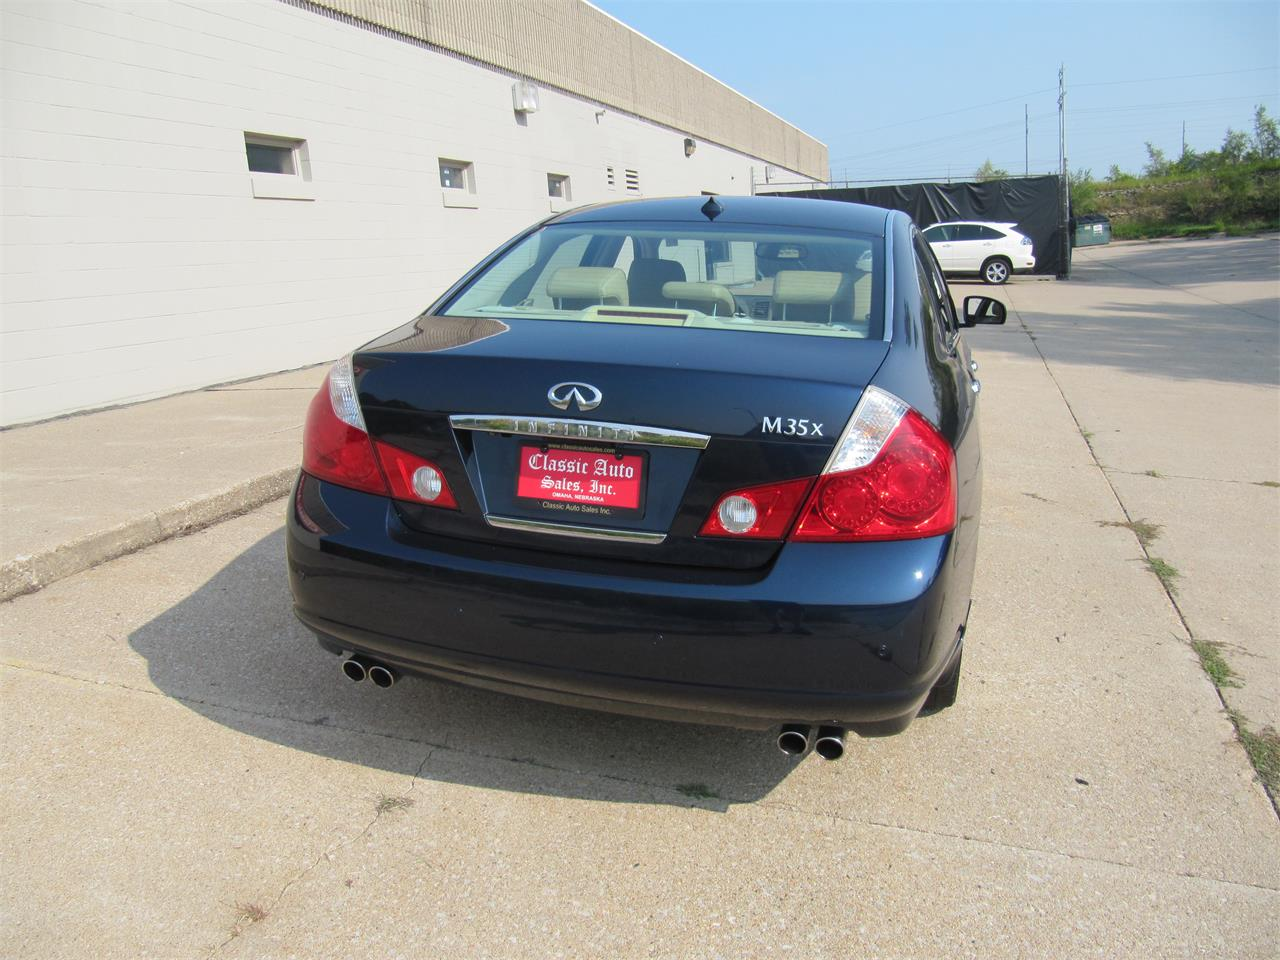 2006 Infiniti M35 (CC-1138130) for sale in Omaha, Nebraska